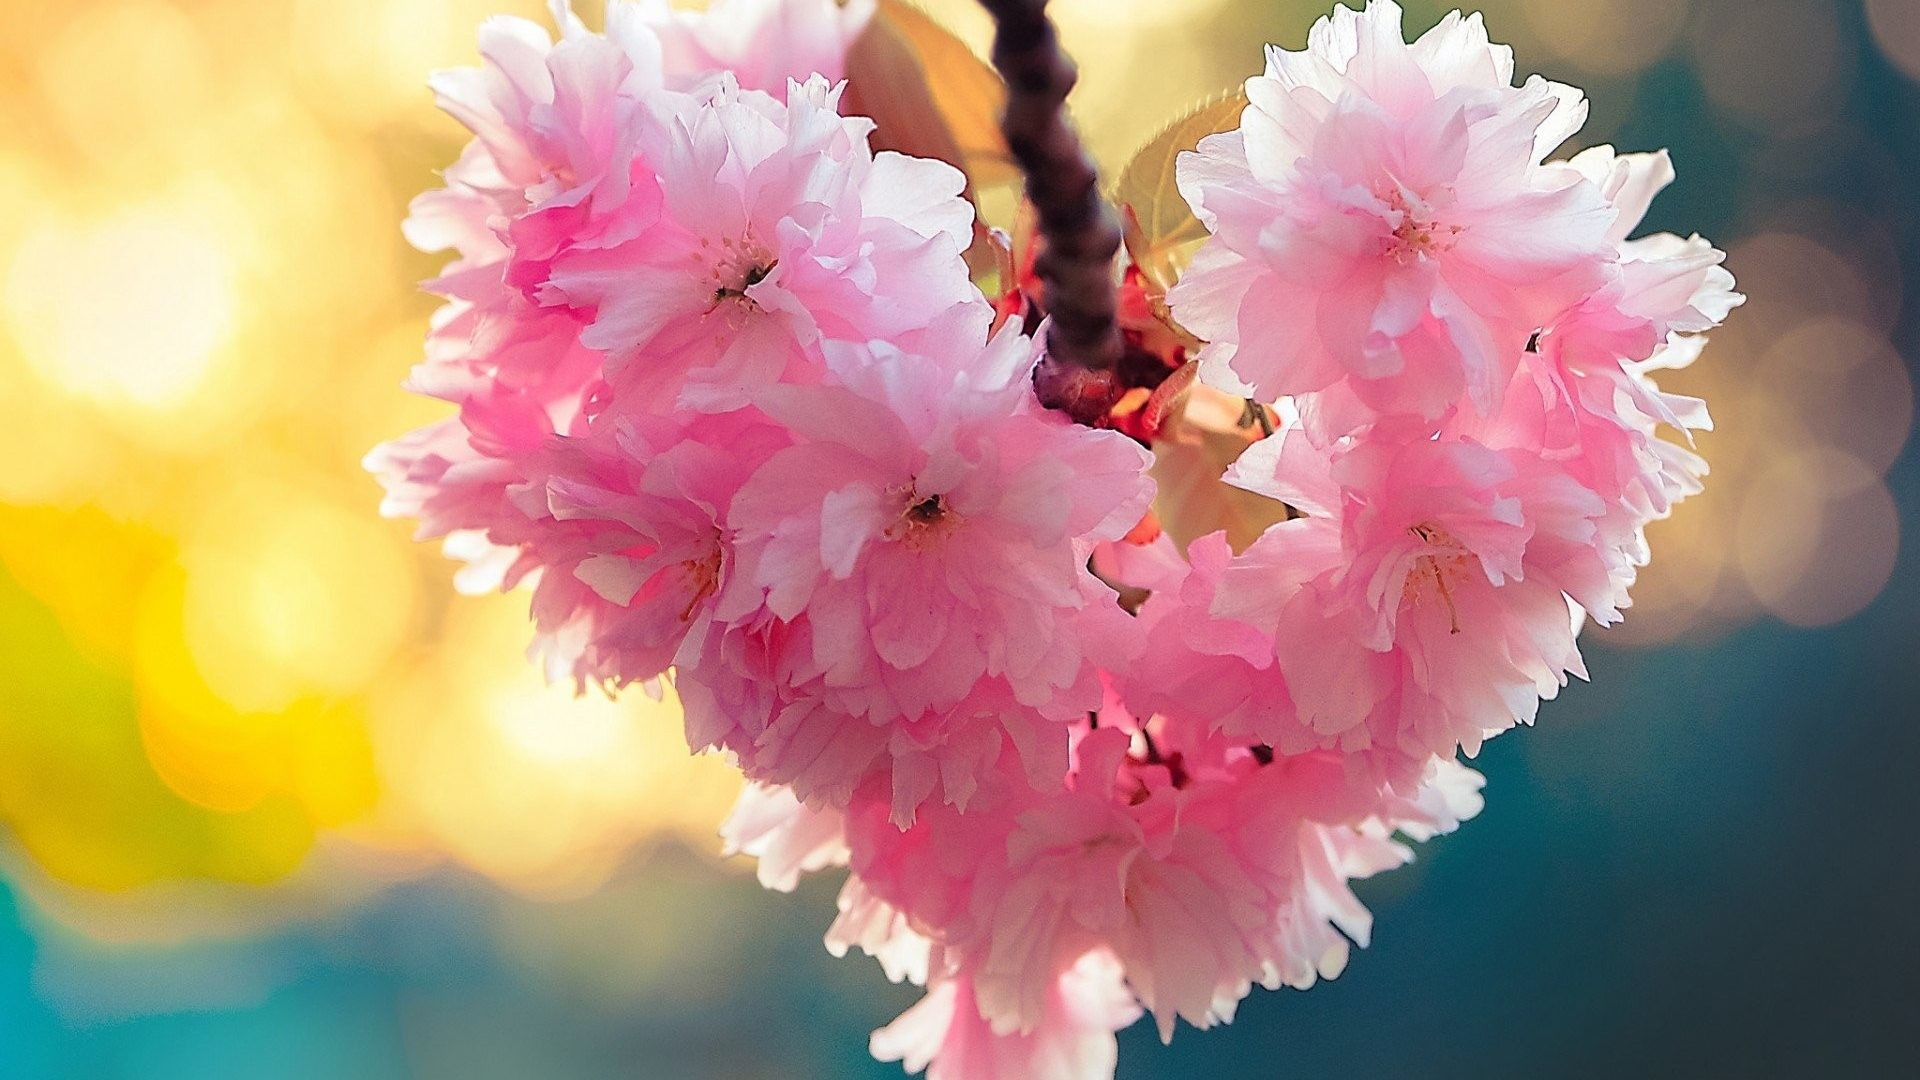 Res: 1920x1080, Download Flowers Heart Bloom Spring Love Nature Download Hd Images Of For Pc